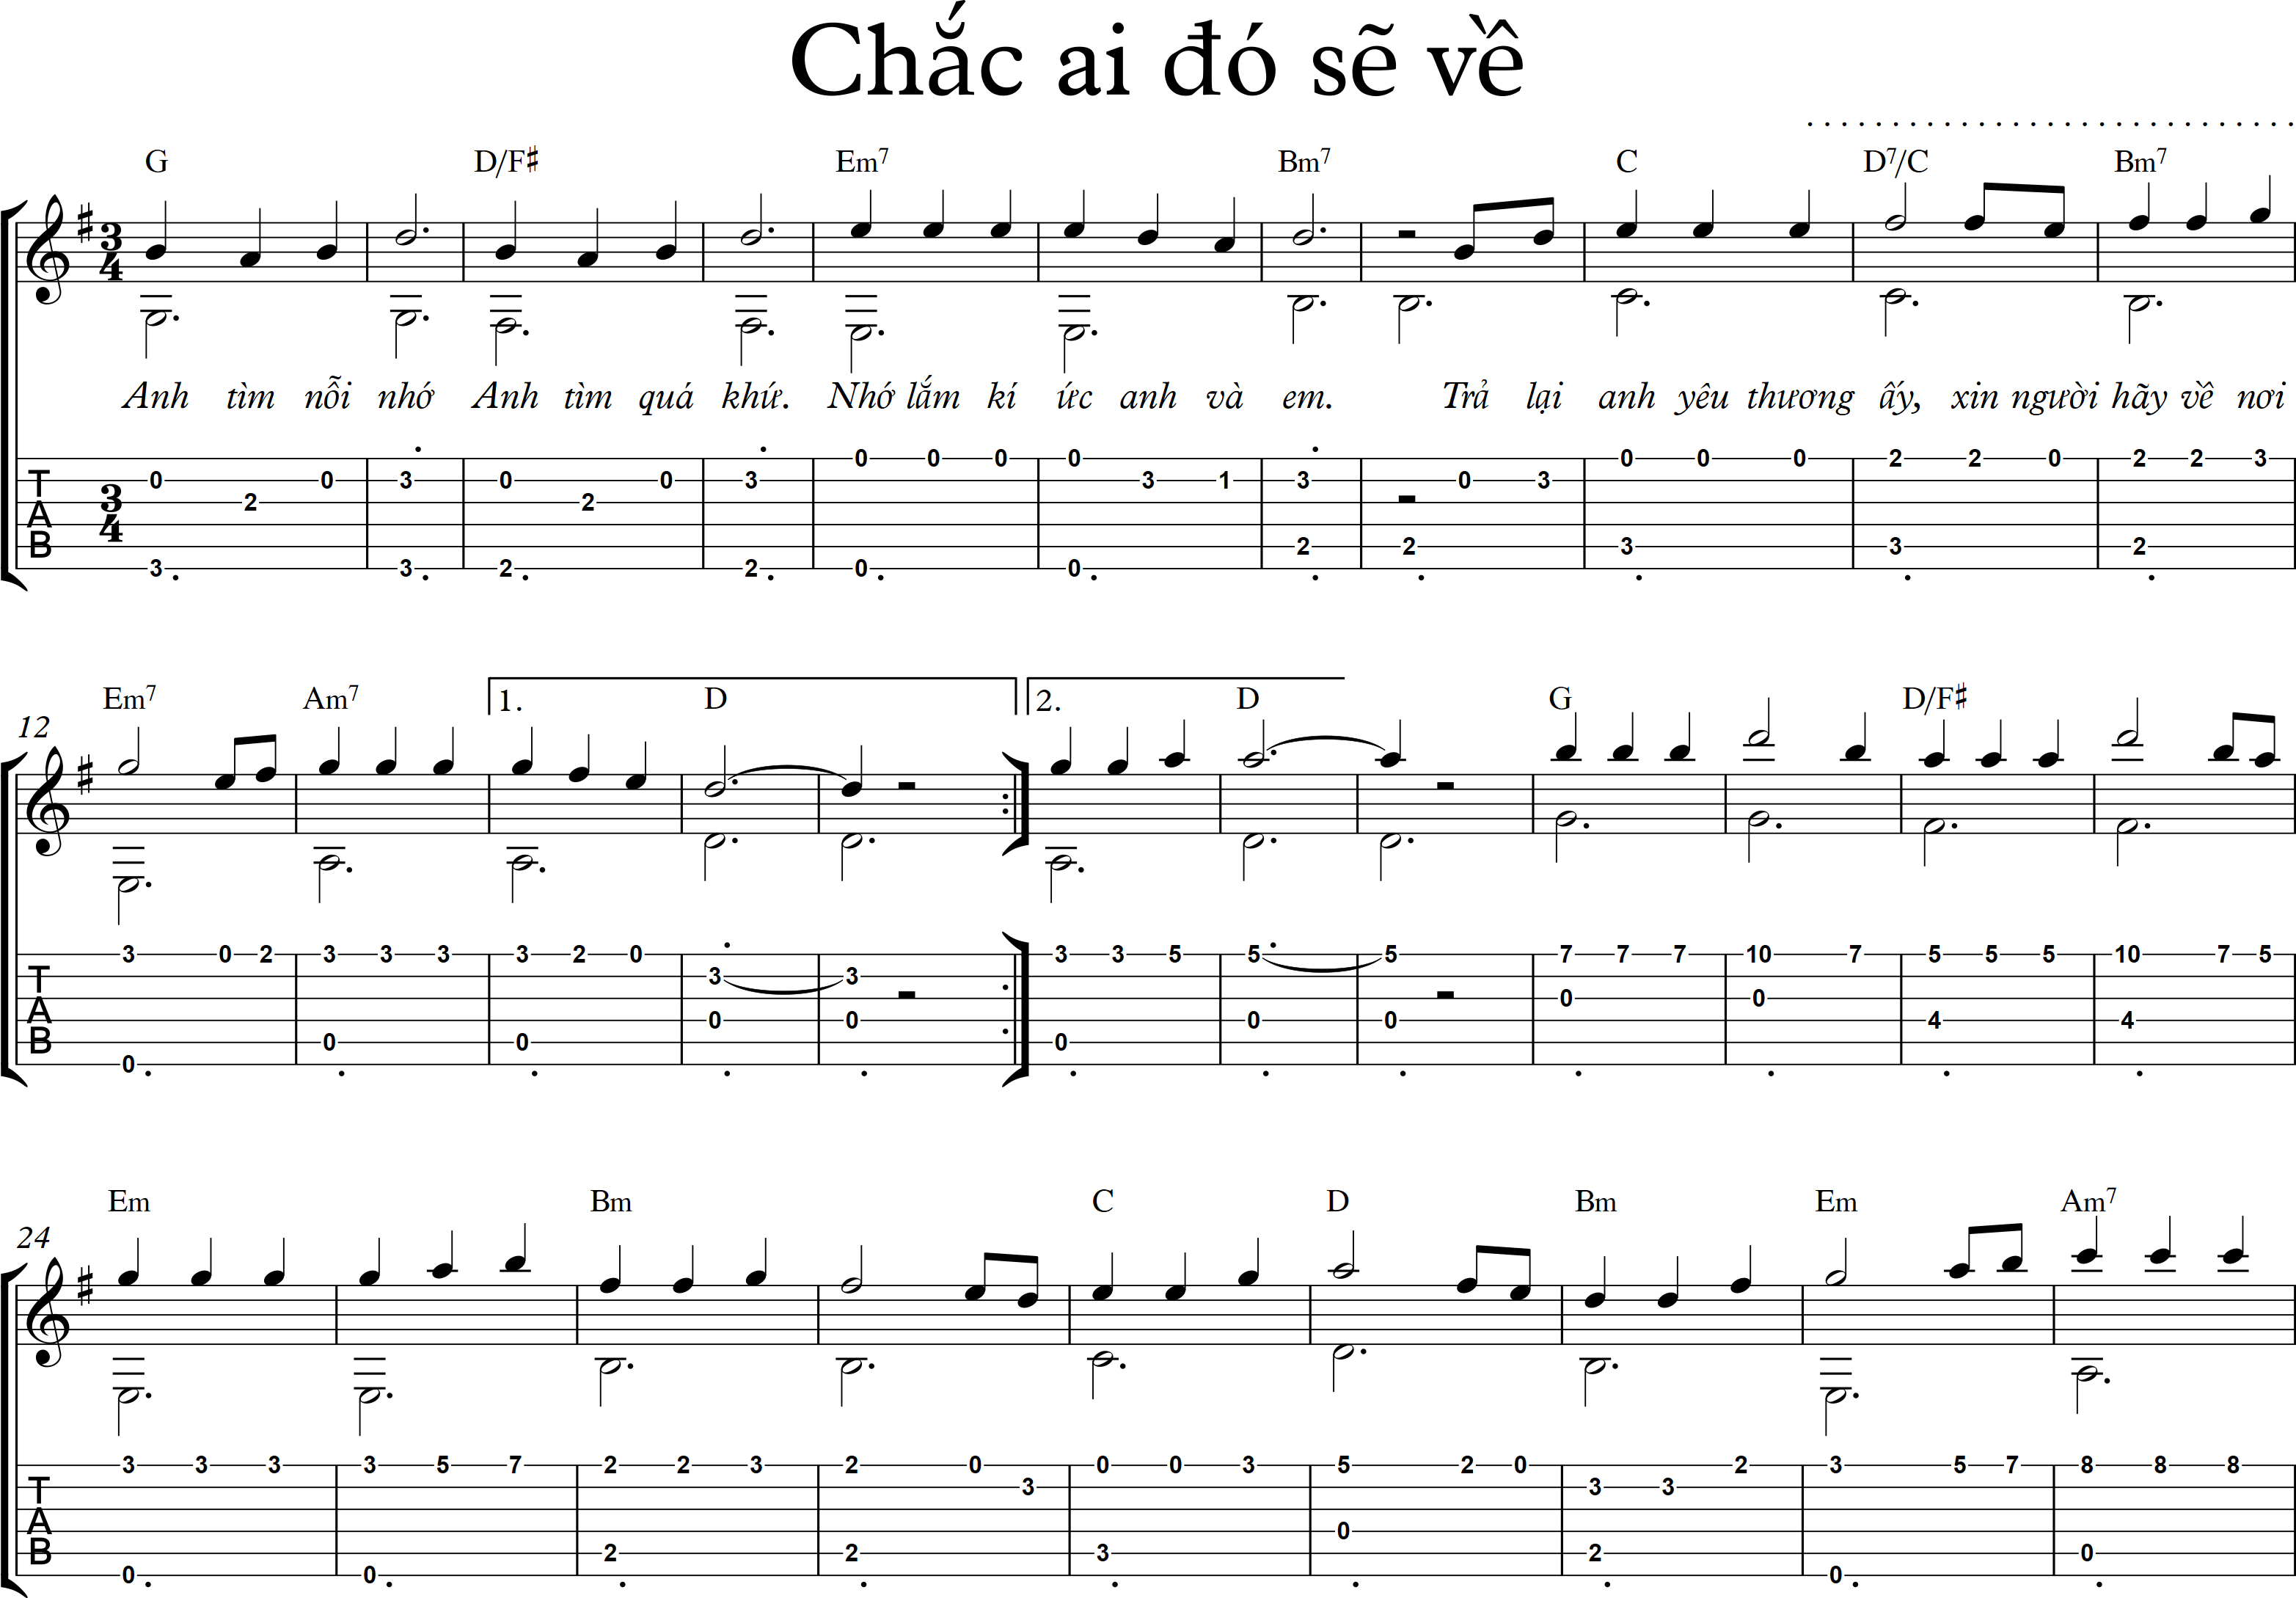 Chac ai do se ve - TAB - G_0001